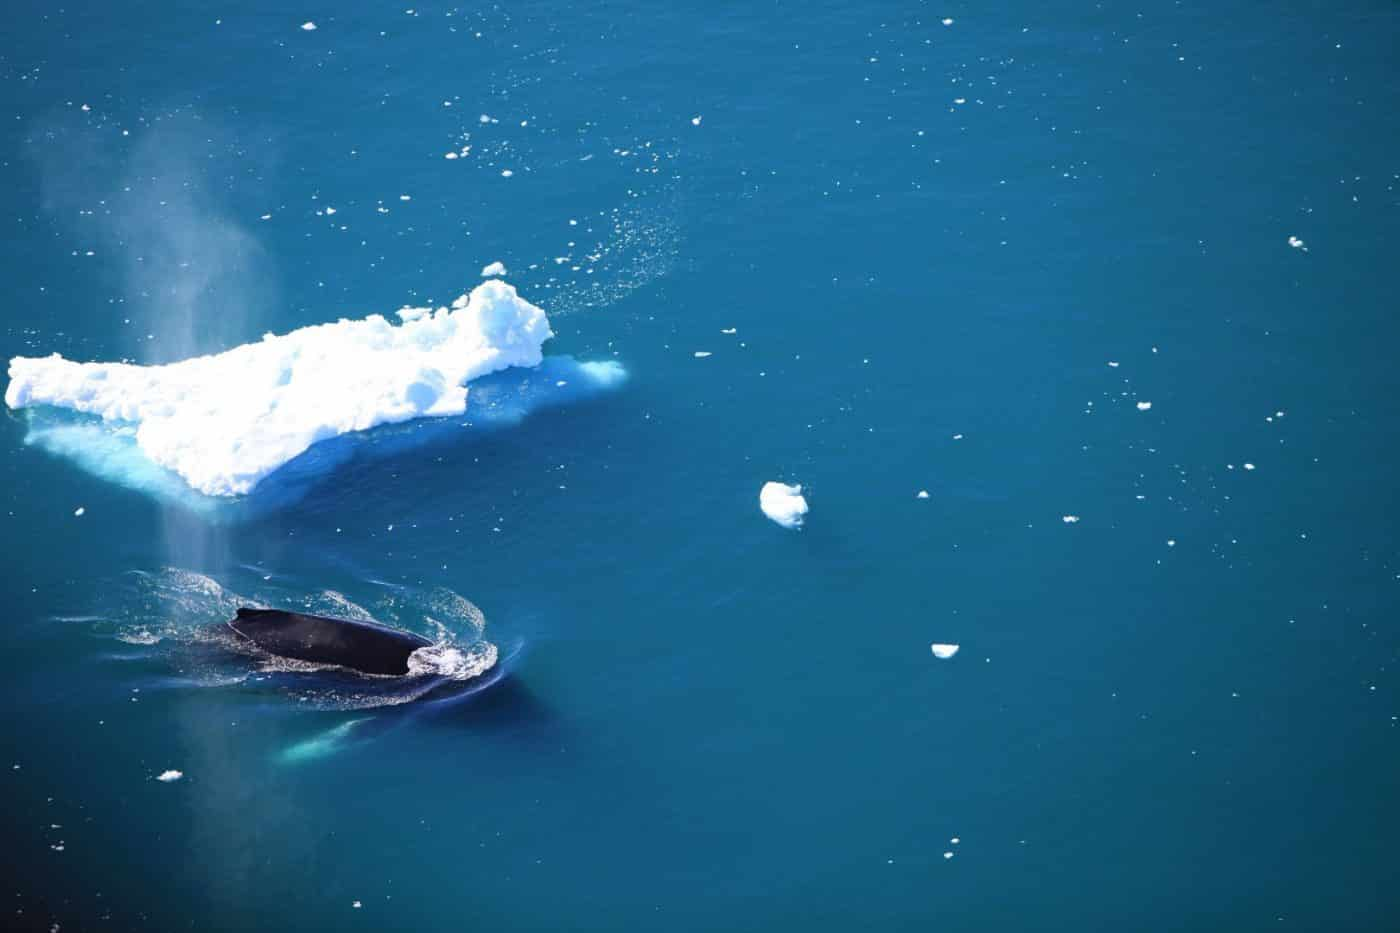 Whale near the iceberg. Photo by Anne Mette Christiansen